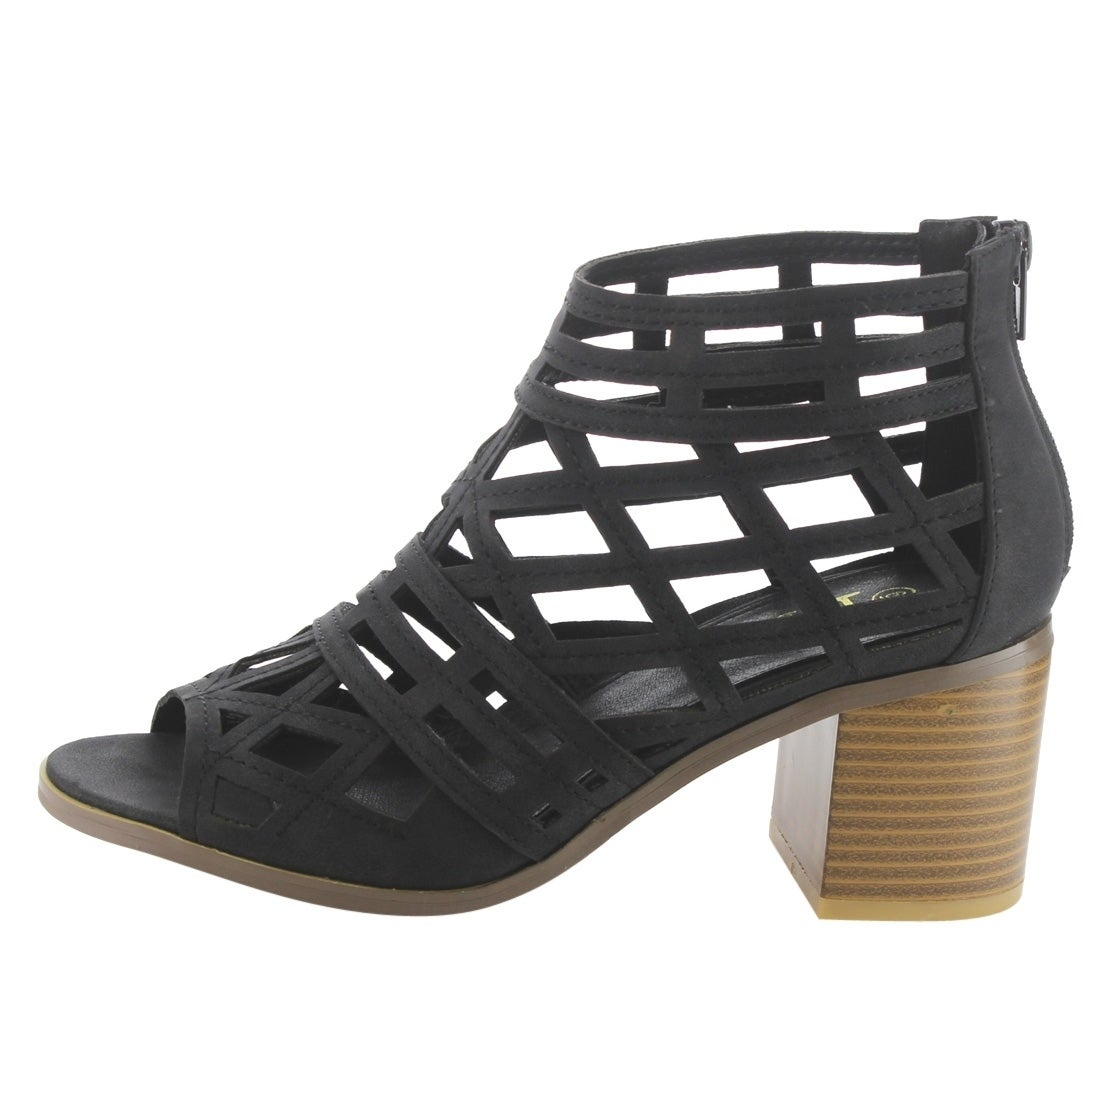 6f3e6bd6e0 Shop BETANI EI25 Women s Peep Toe Cut Out Back Zipper Block Heel Cage Ankle  Booties - Free Shipping On Orders Over  45 - Overstock - 18021518